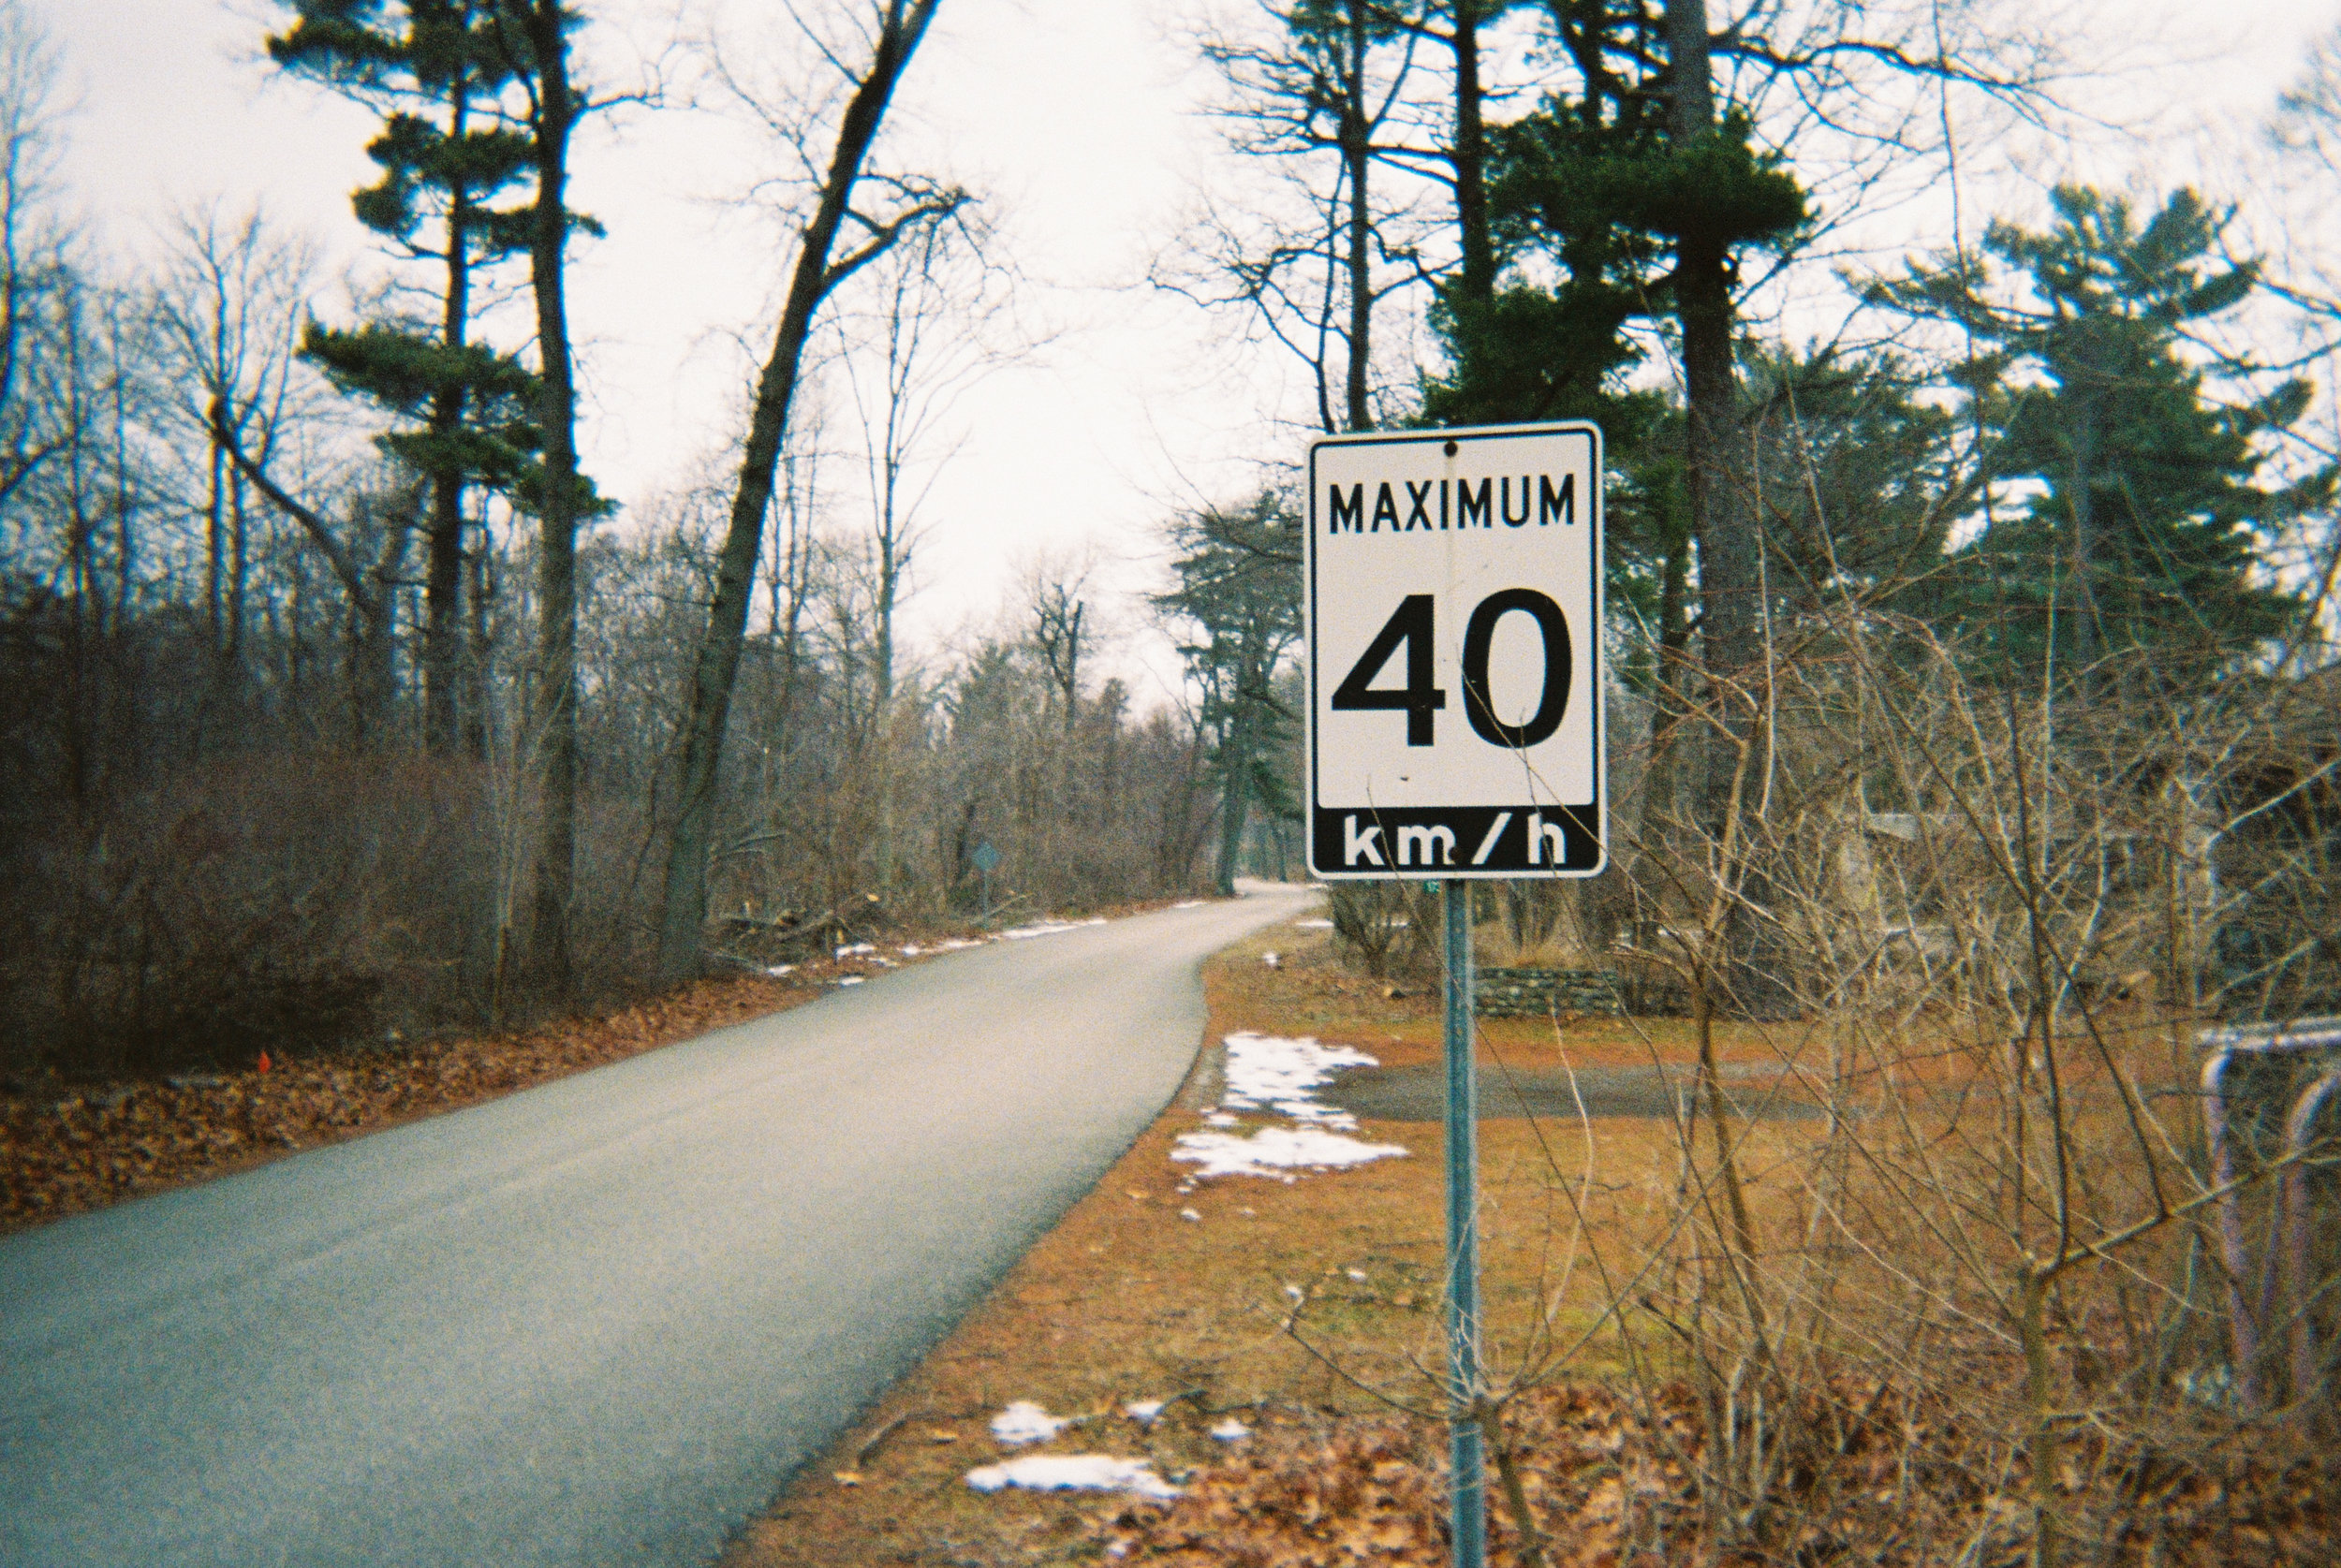 17_fuji_townlines_unposted_40mph-.jpg